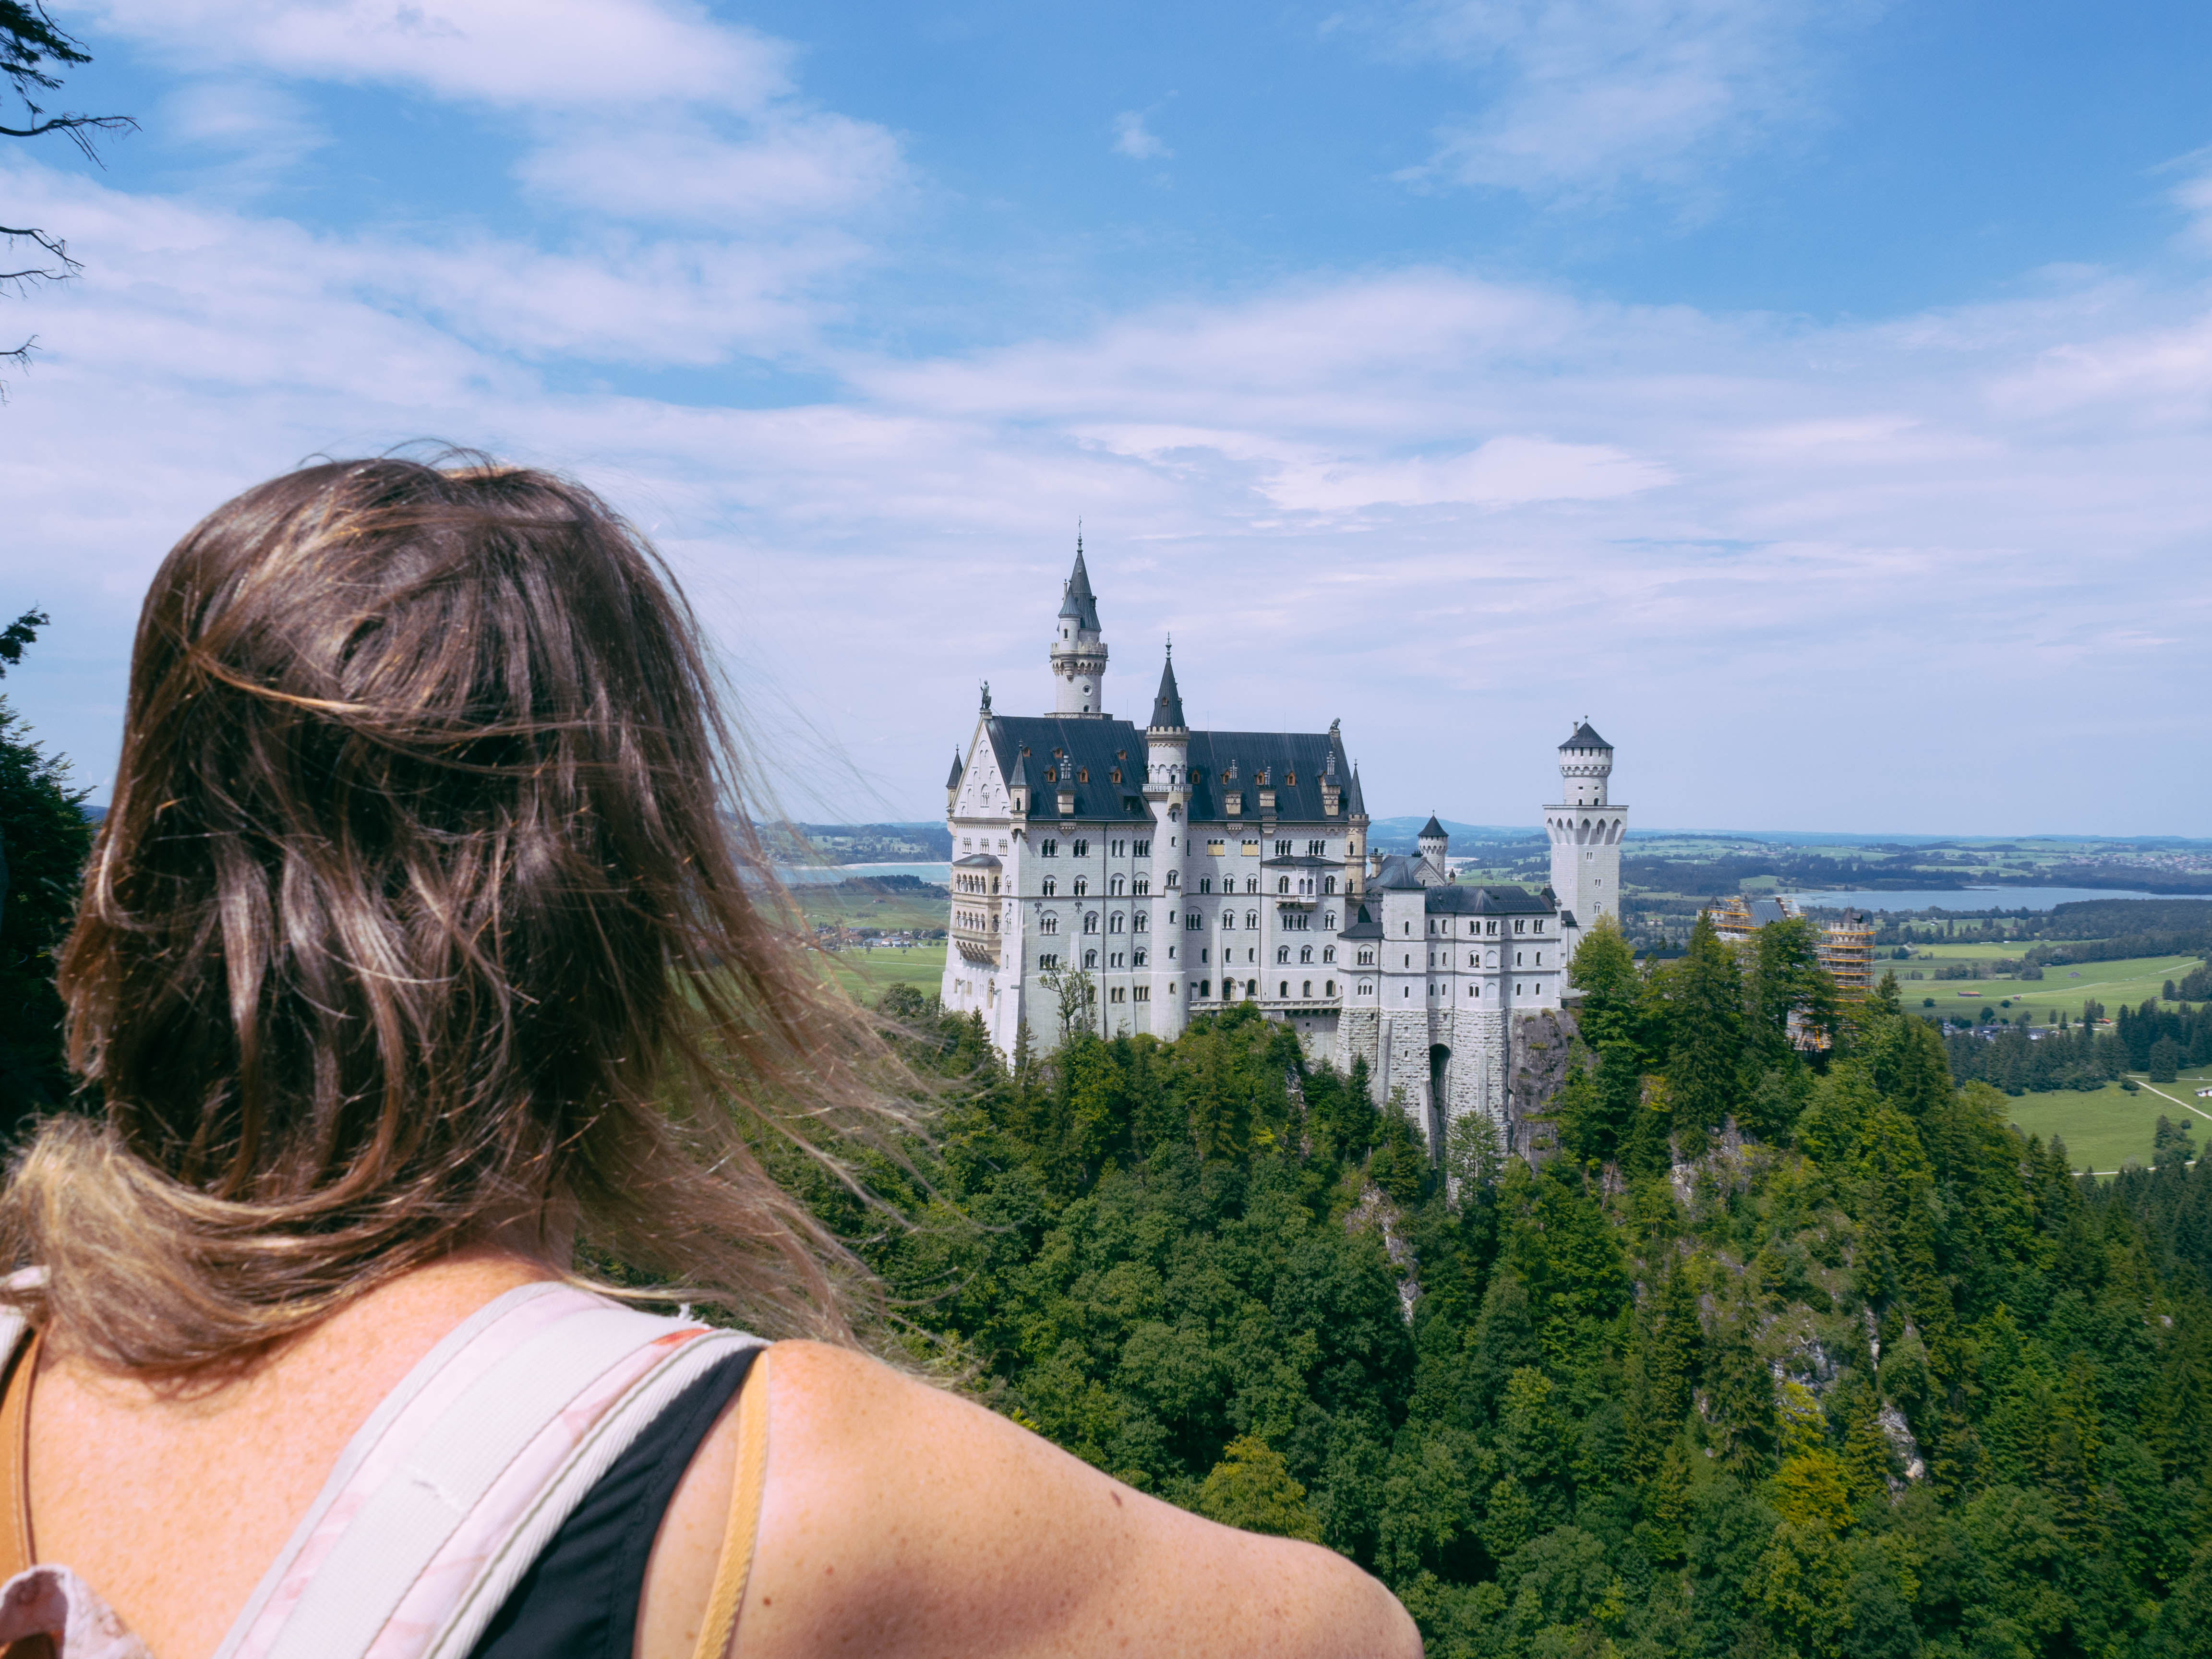 Image for blog article: Neuschwanstein Castle